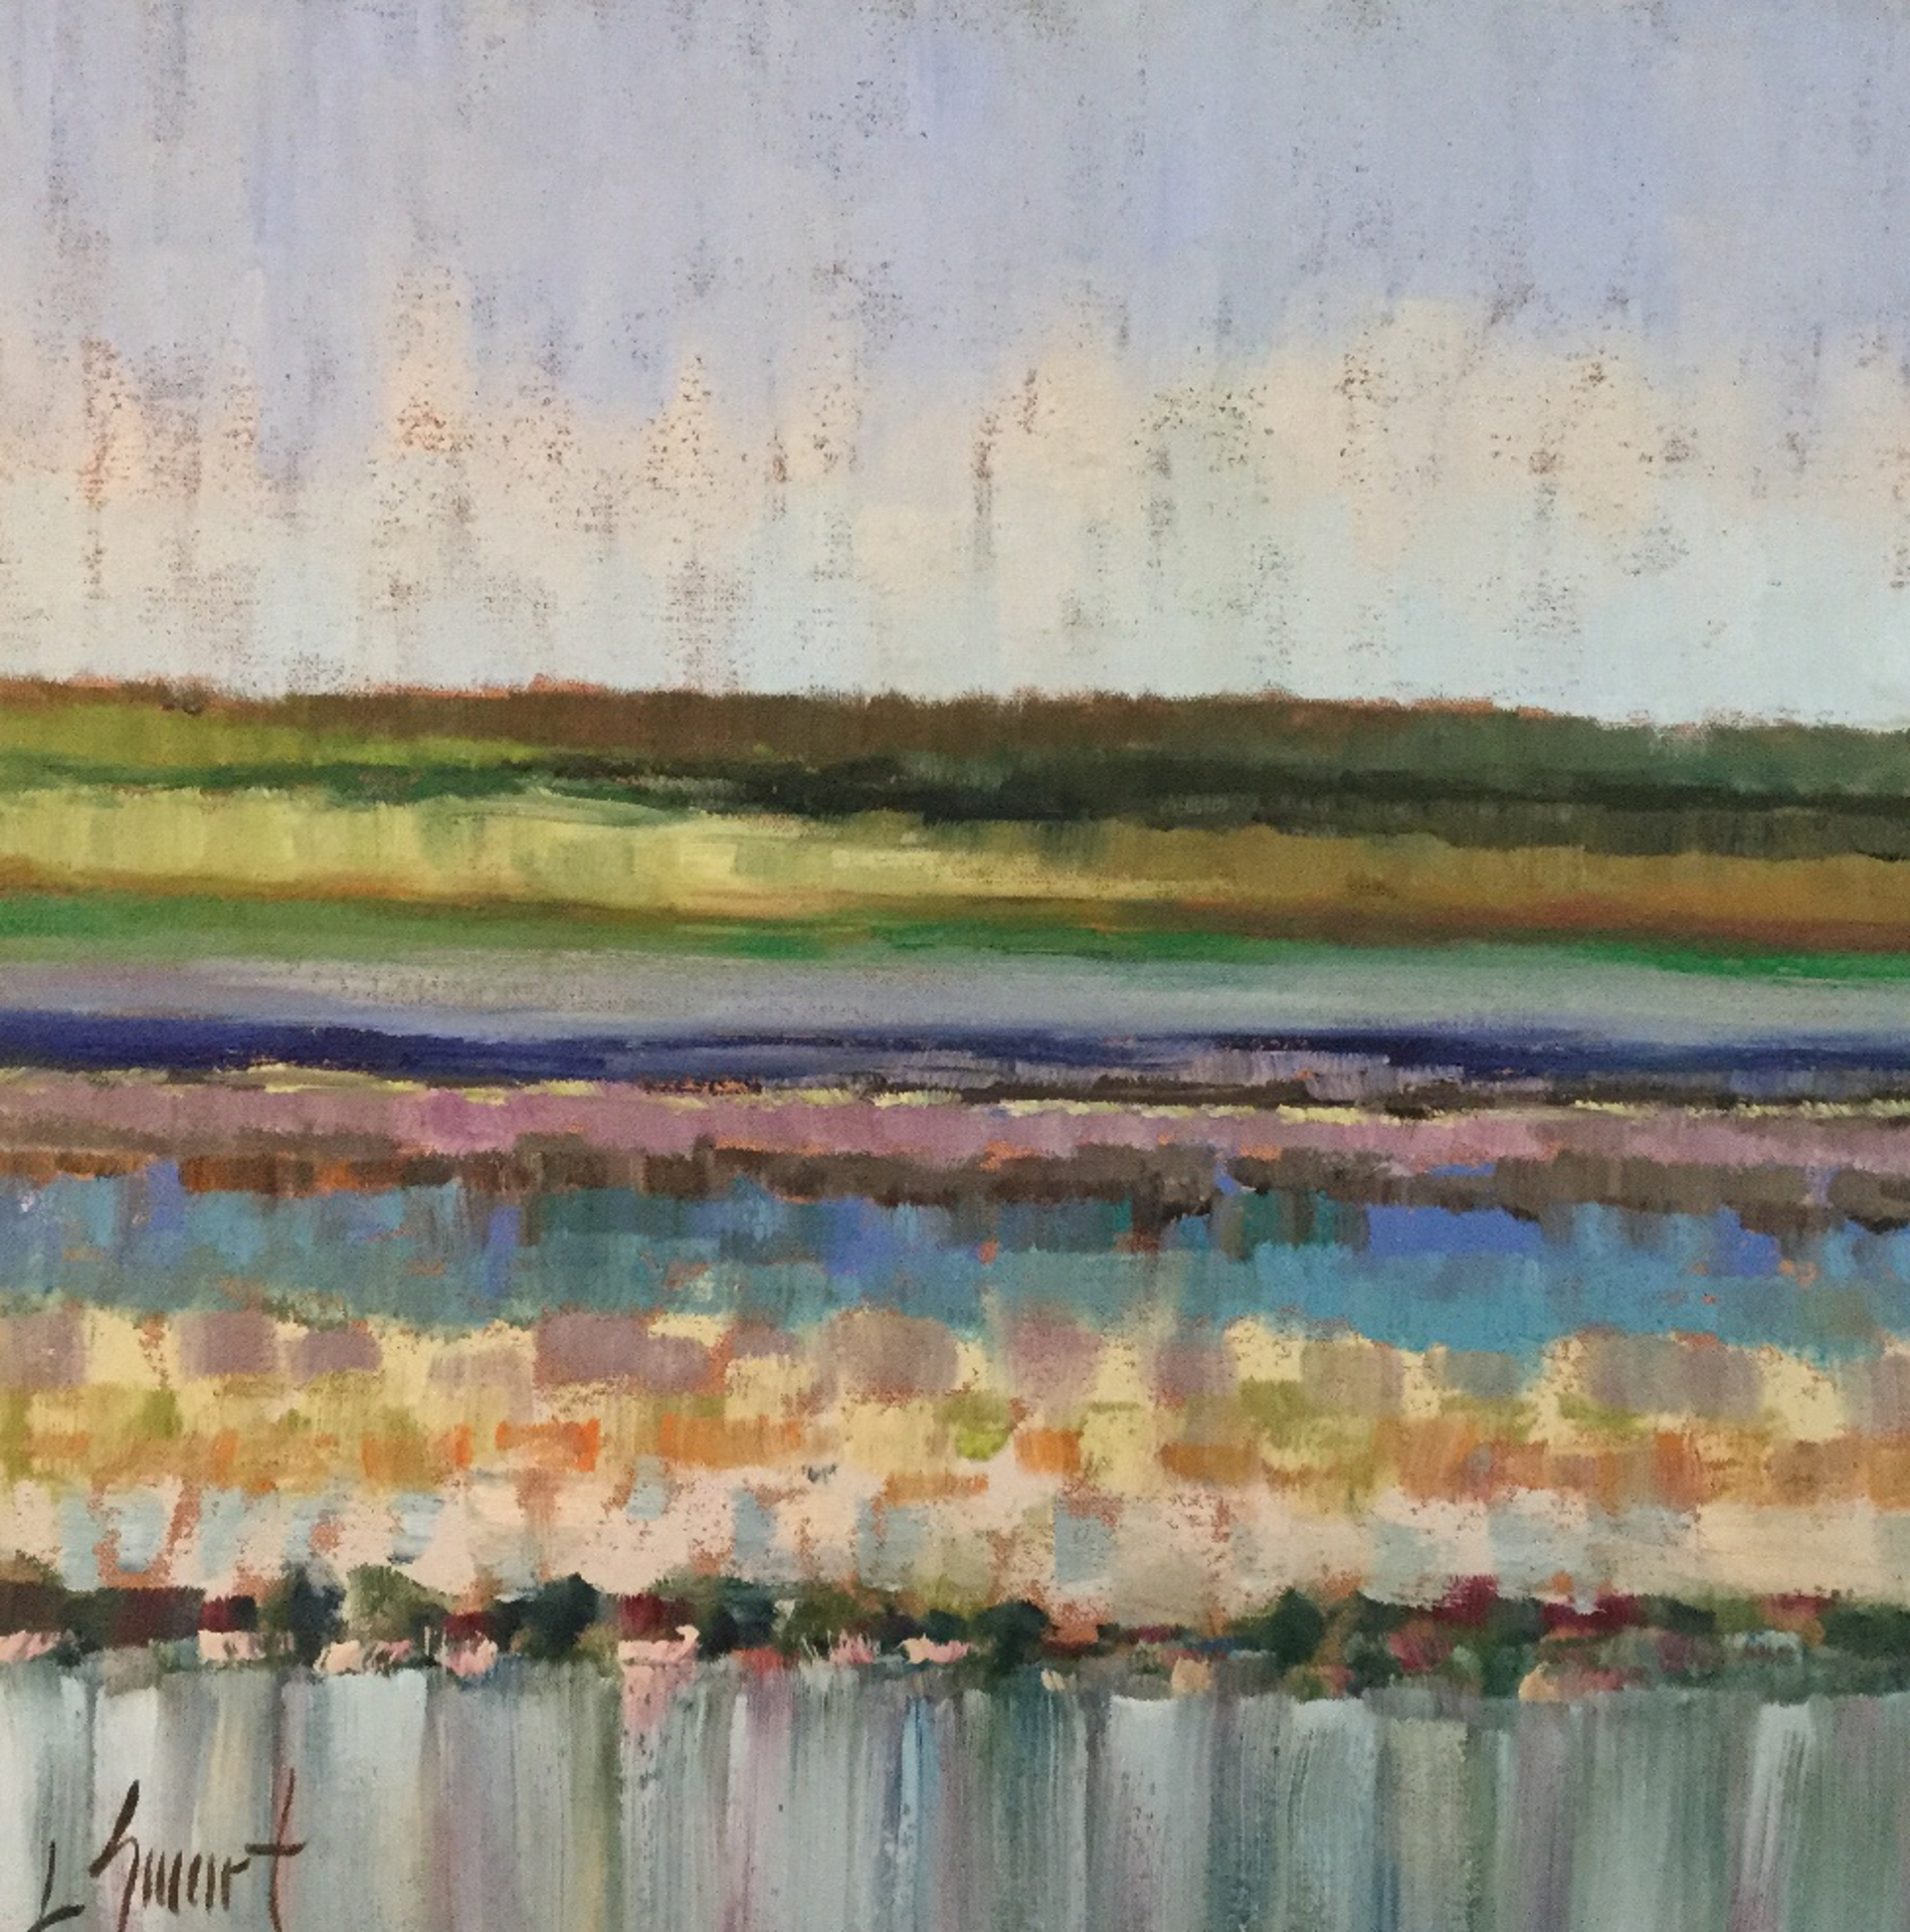 Colorful Marsh View I by Libby Smart